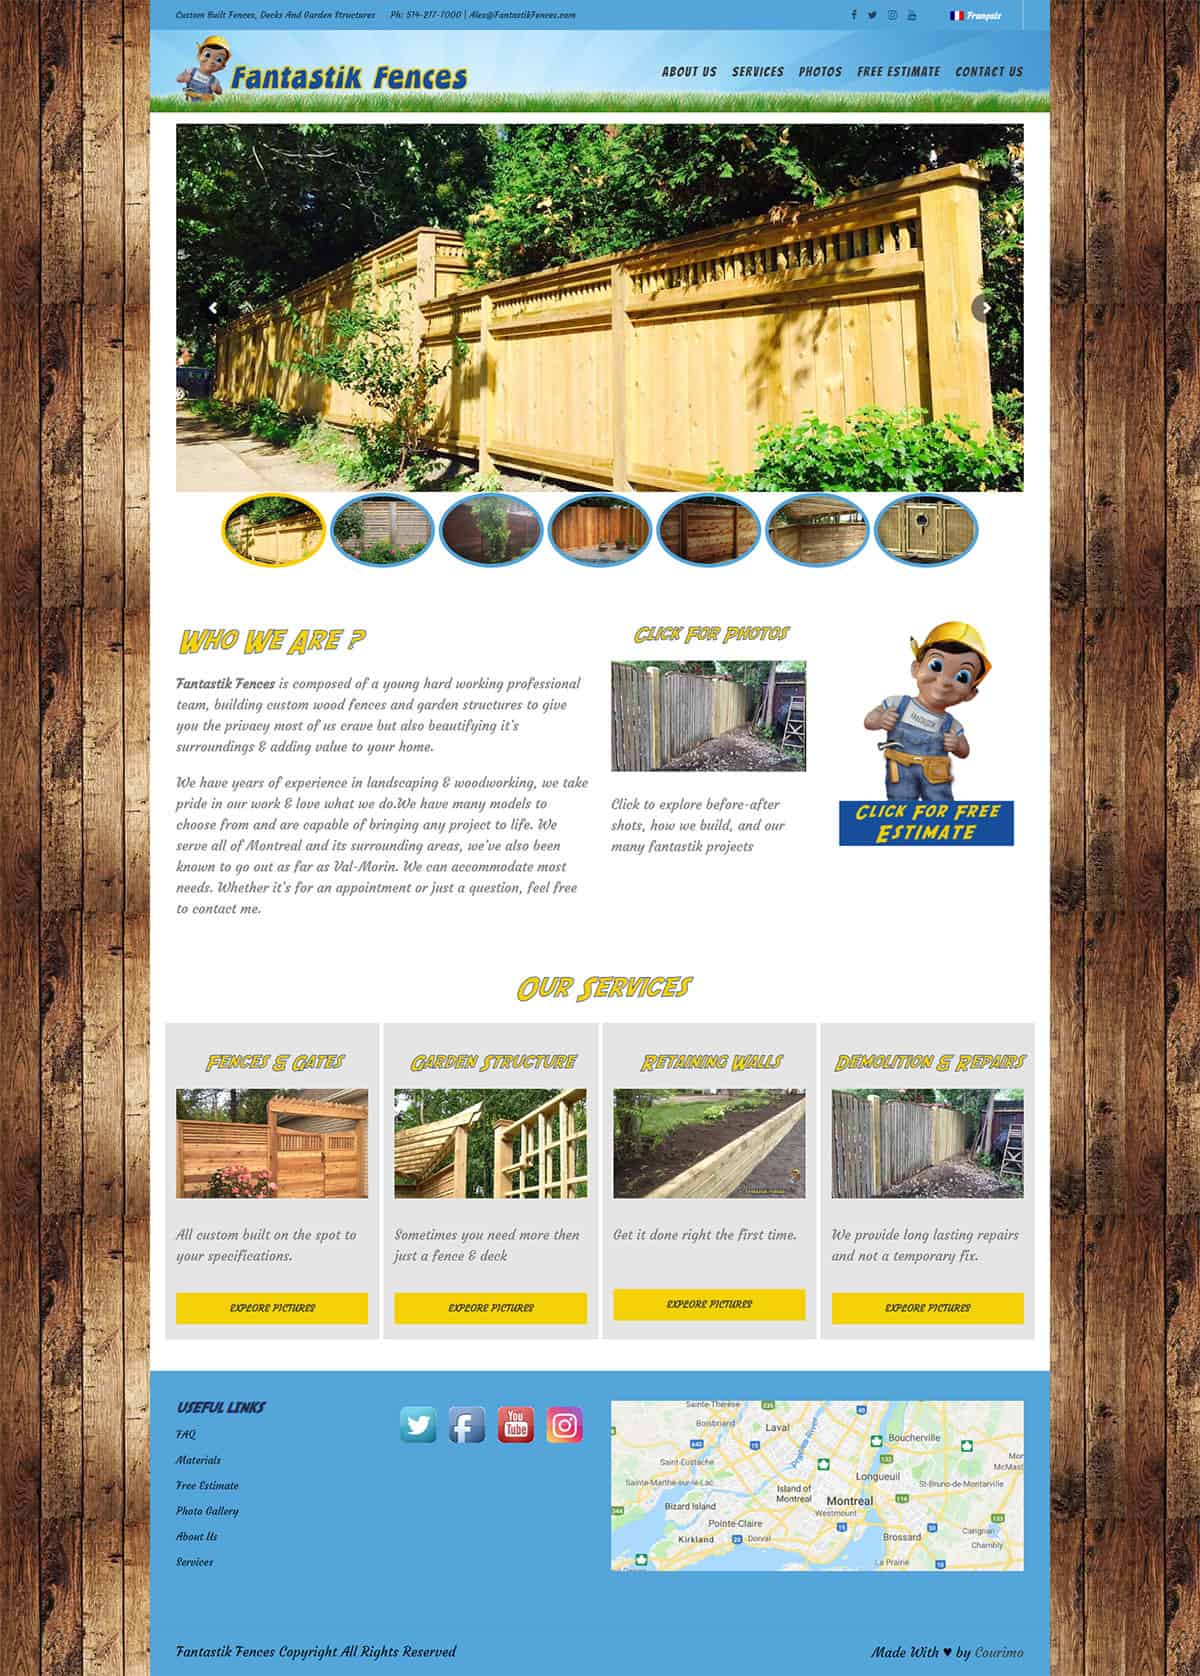 Fantastik-Fences-Website-Project-By-Courimo